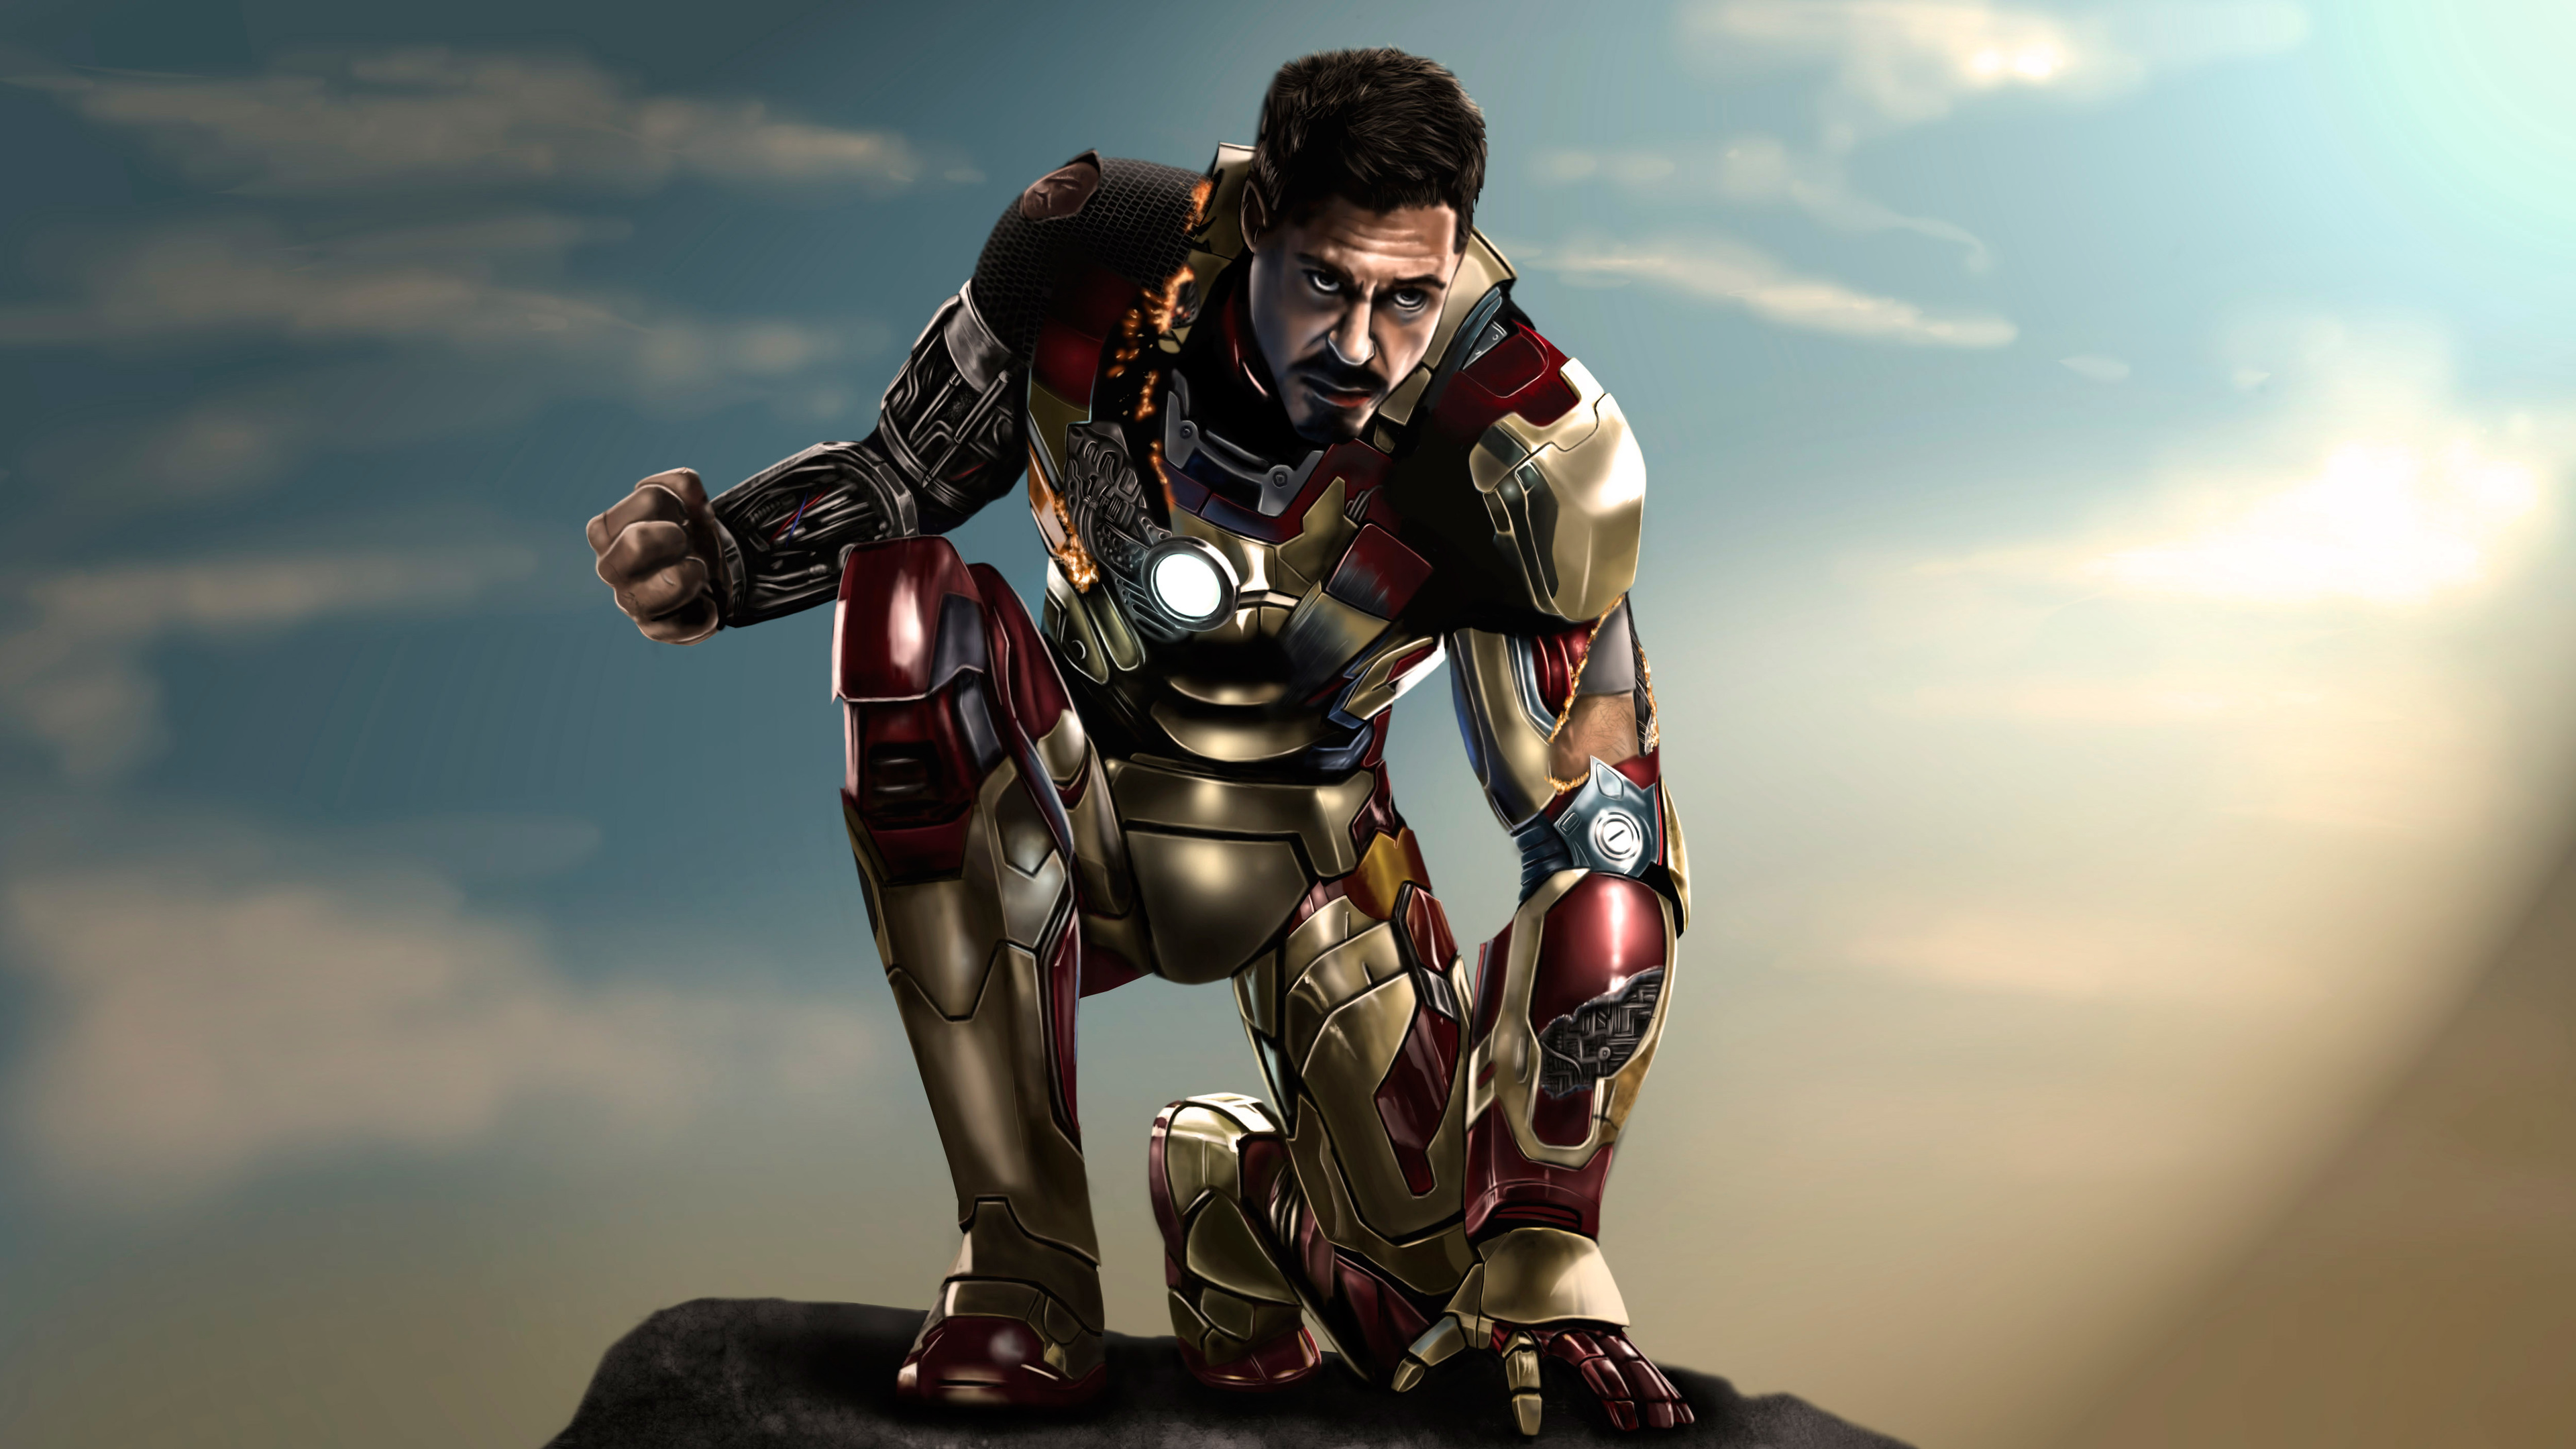 iron man 3 artwork 5k 1536523893 - Iron Man 3 Artwork 5k - superheroes wallpapers, iron man wallpapers, hd-wallpapers, digital art wallpapers, artwork wallpapers, artist wallpapers, 5k wallpapers, 4k-wallpapers